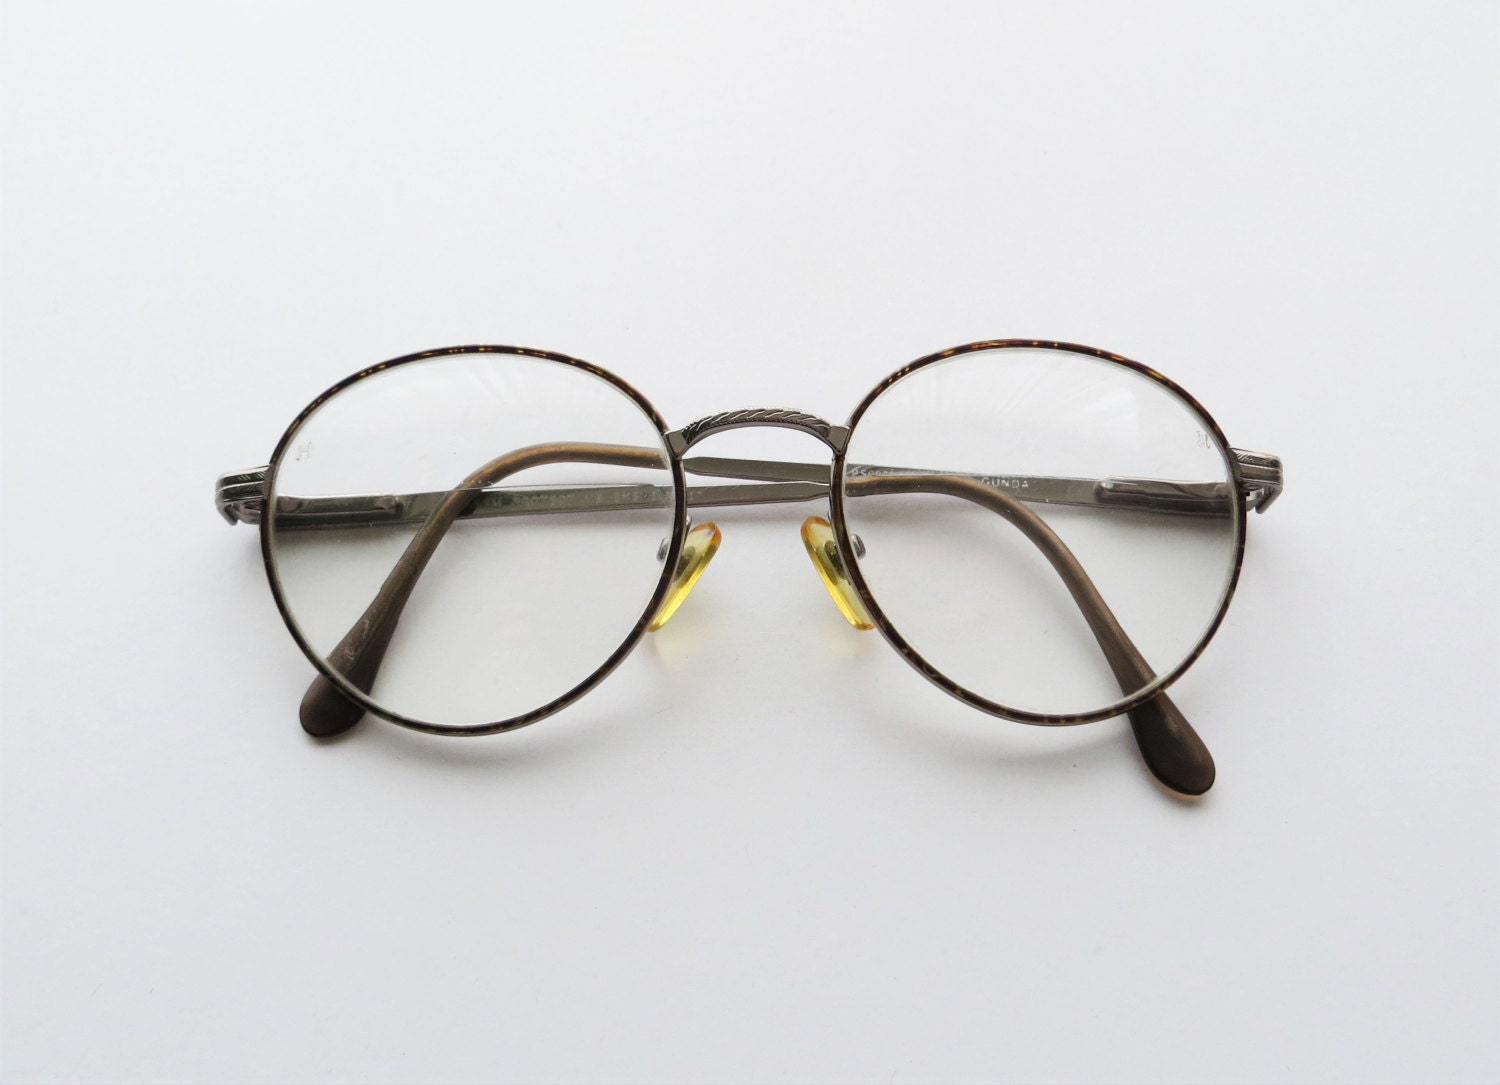 Eyeglass Frames Wire Rim : 90s Round Wire Rim Eyeglasses Maroon Tortoise Shell and